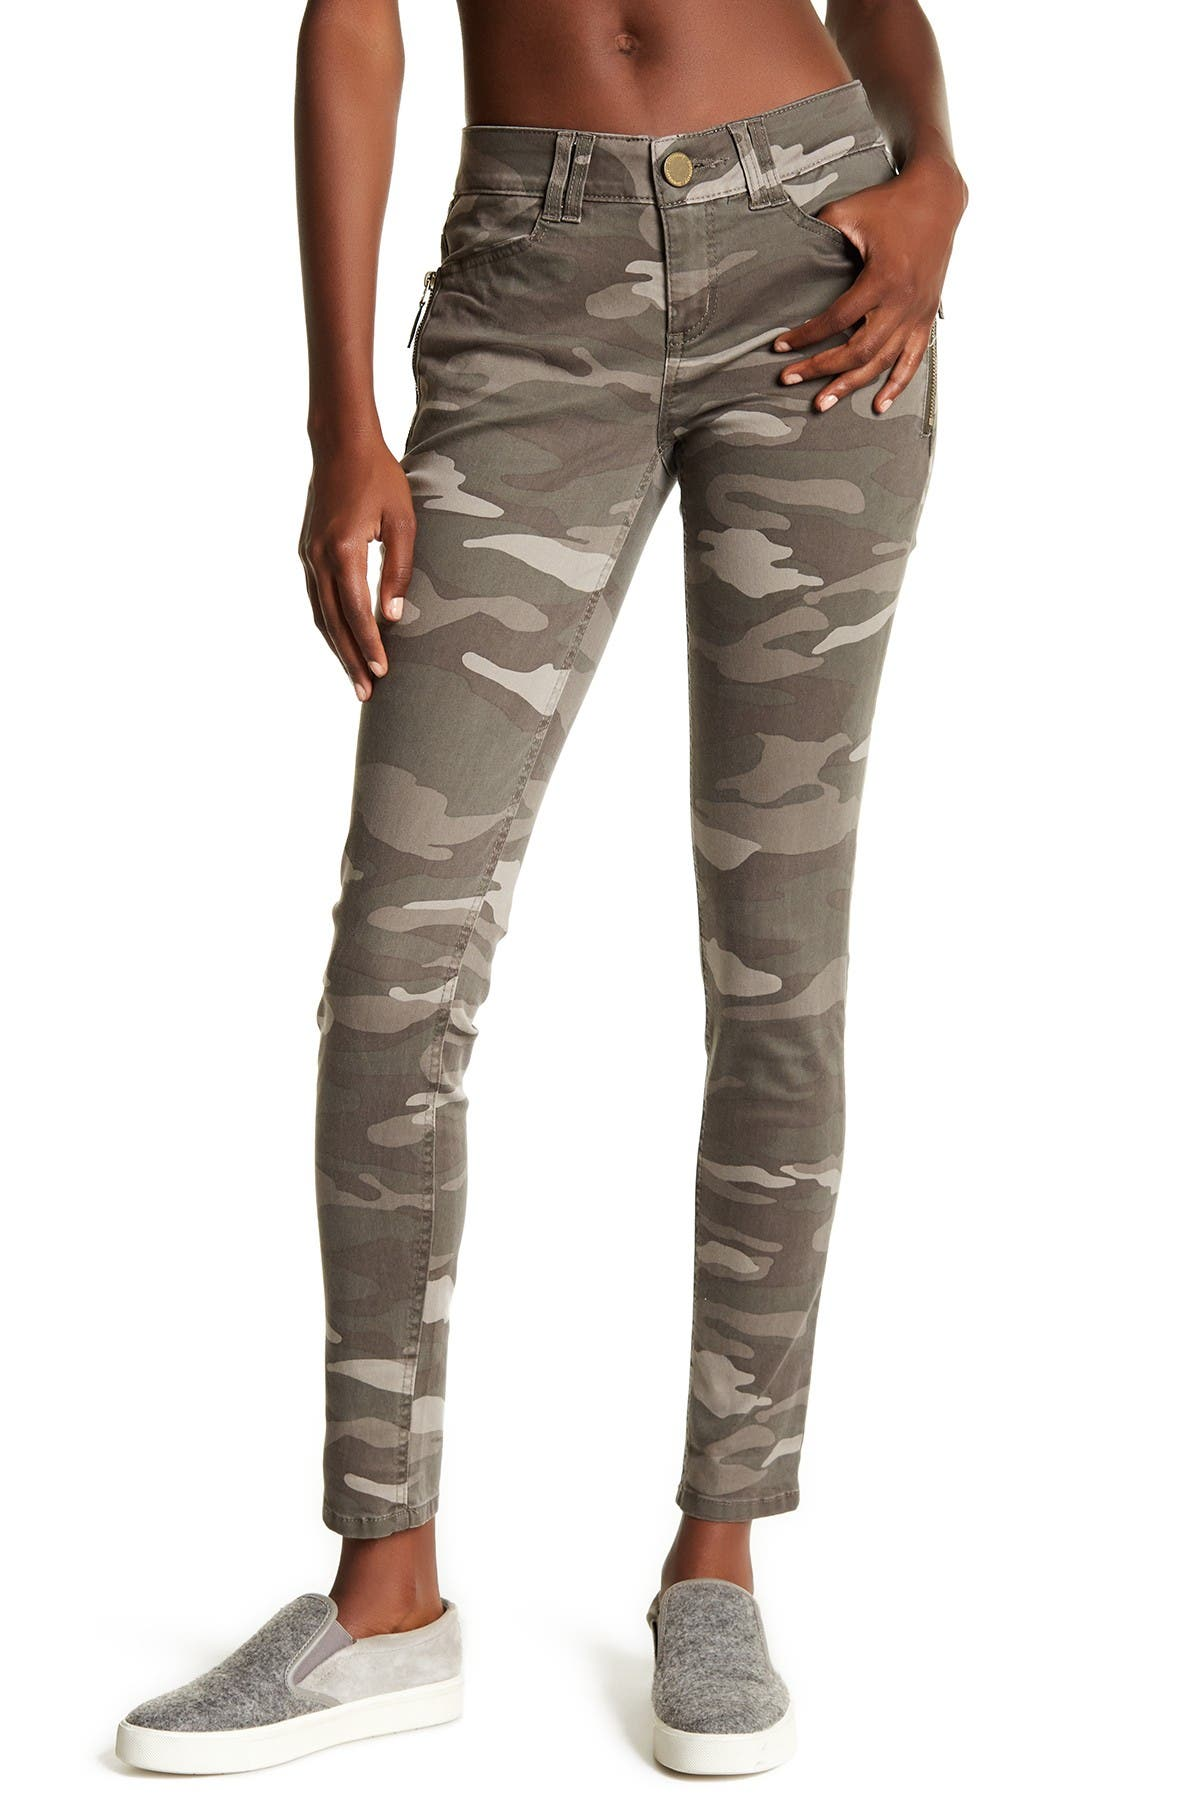 Image of Democracy Ab Technology Camo Skinny Jeans